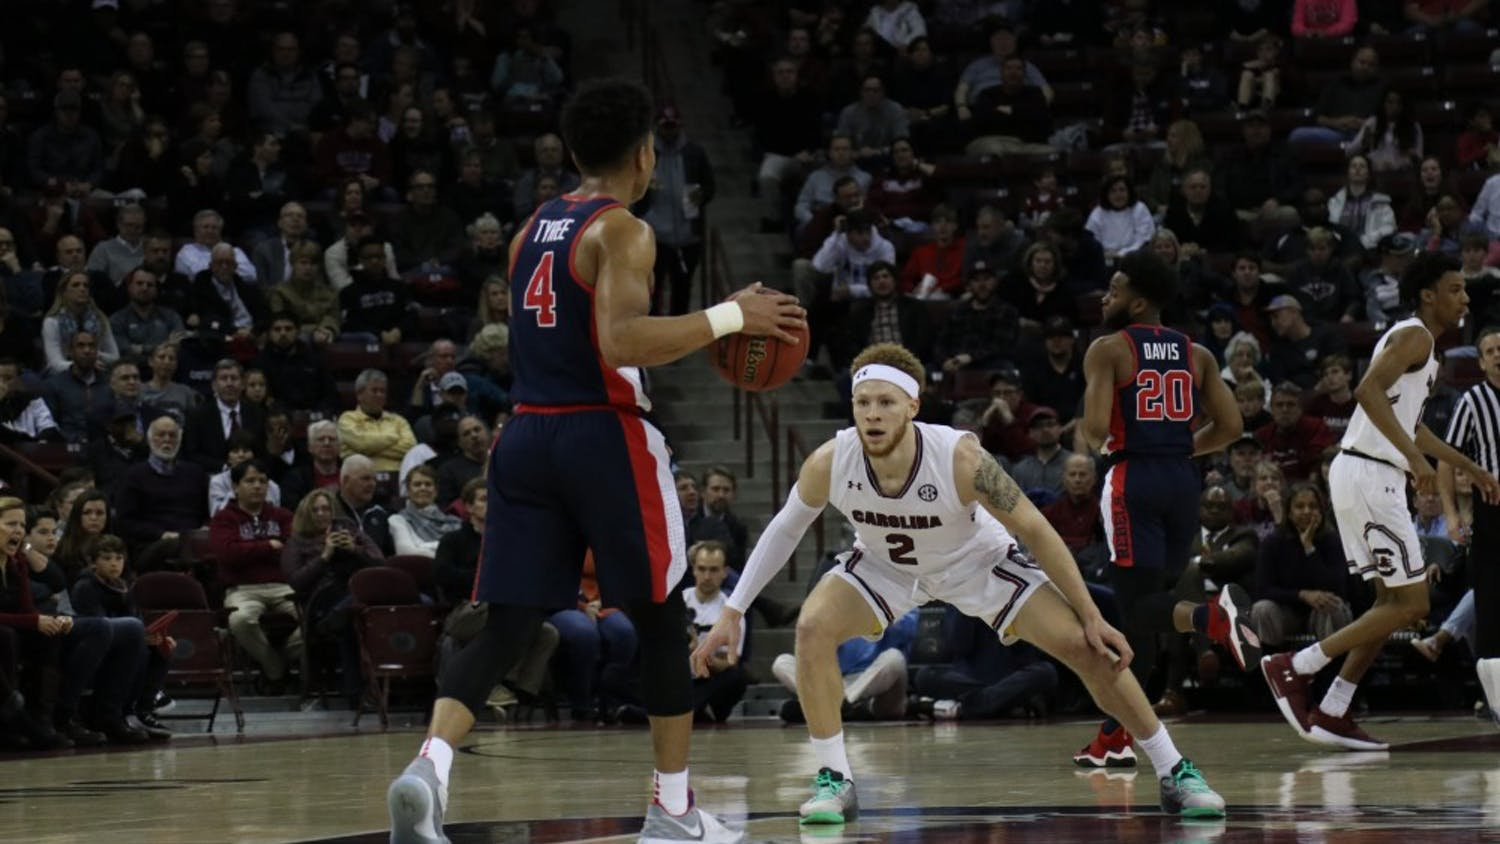 South Carolina men's basketball continues its SEC winning streak after defeating the Ole Miss Rebels on Tuesday, Feb. 19.